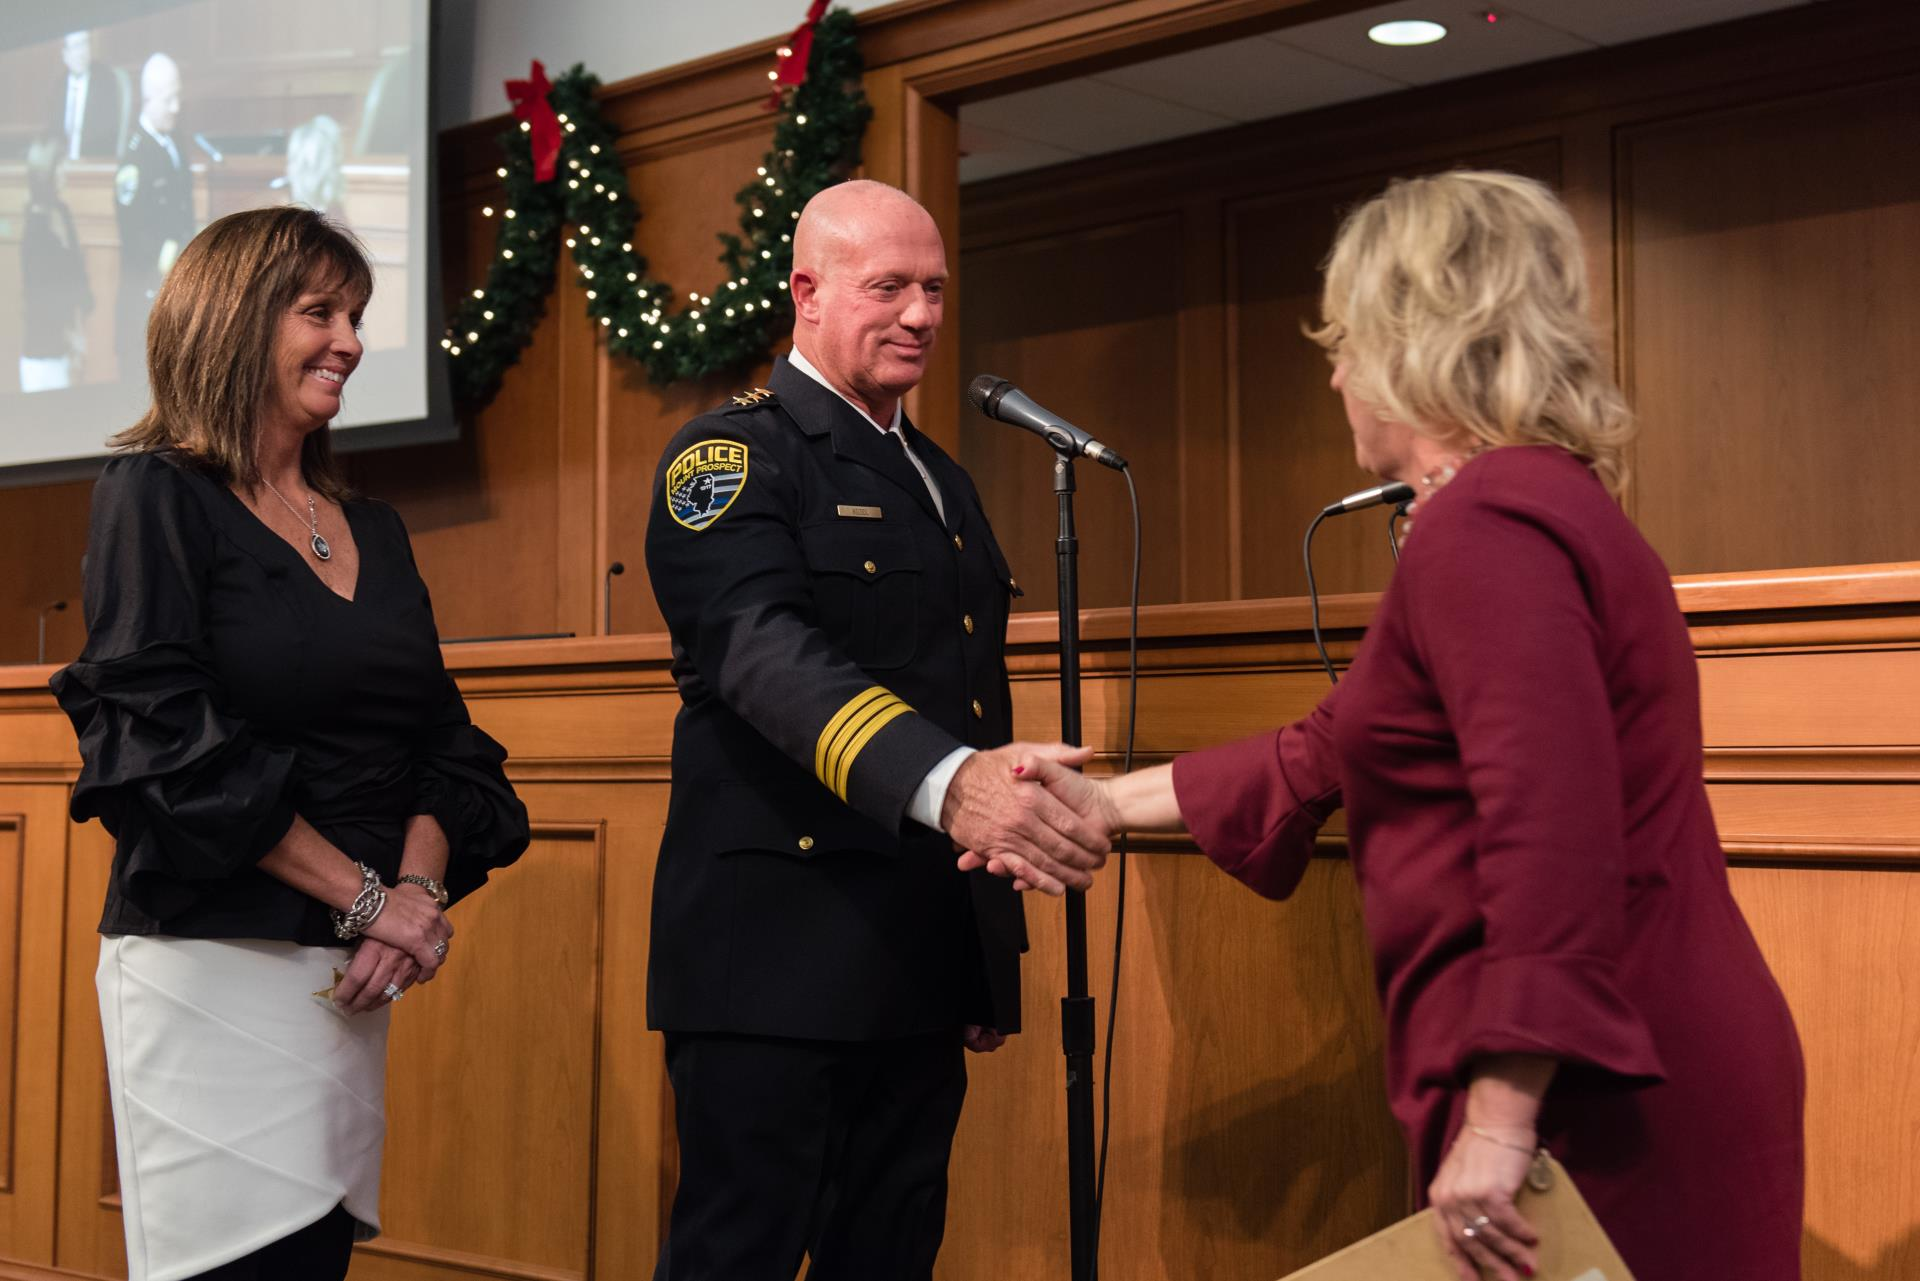 Chief Koziol Swearing-In Ceremony Final-4212